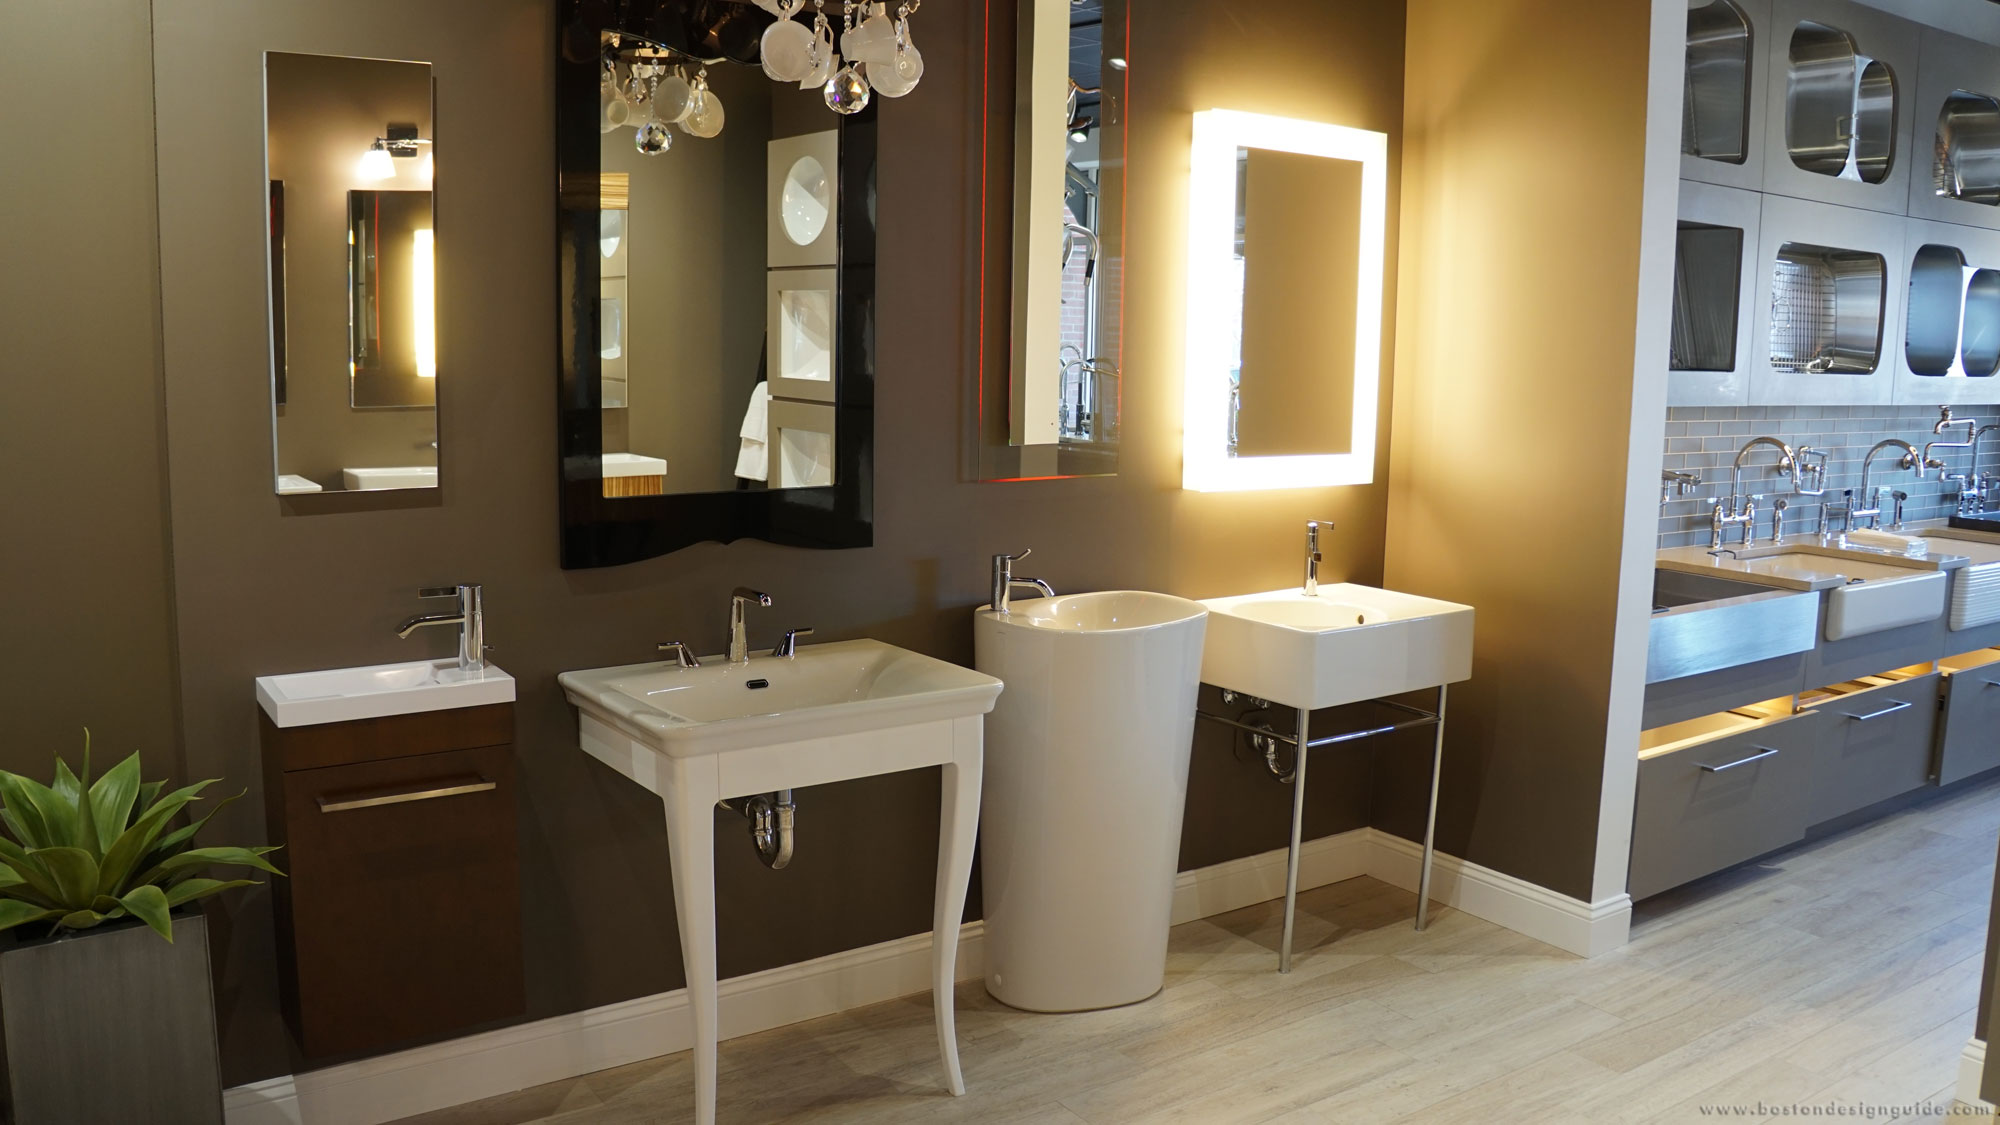 Mirror Home trends furniture